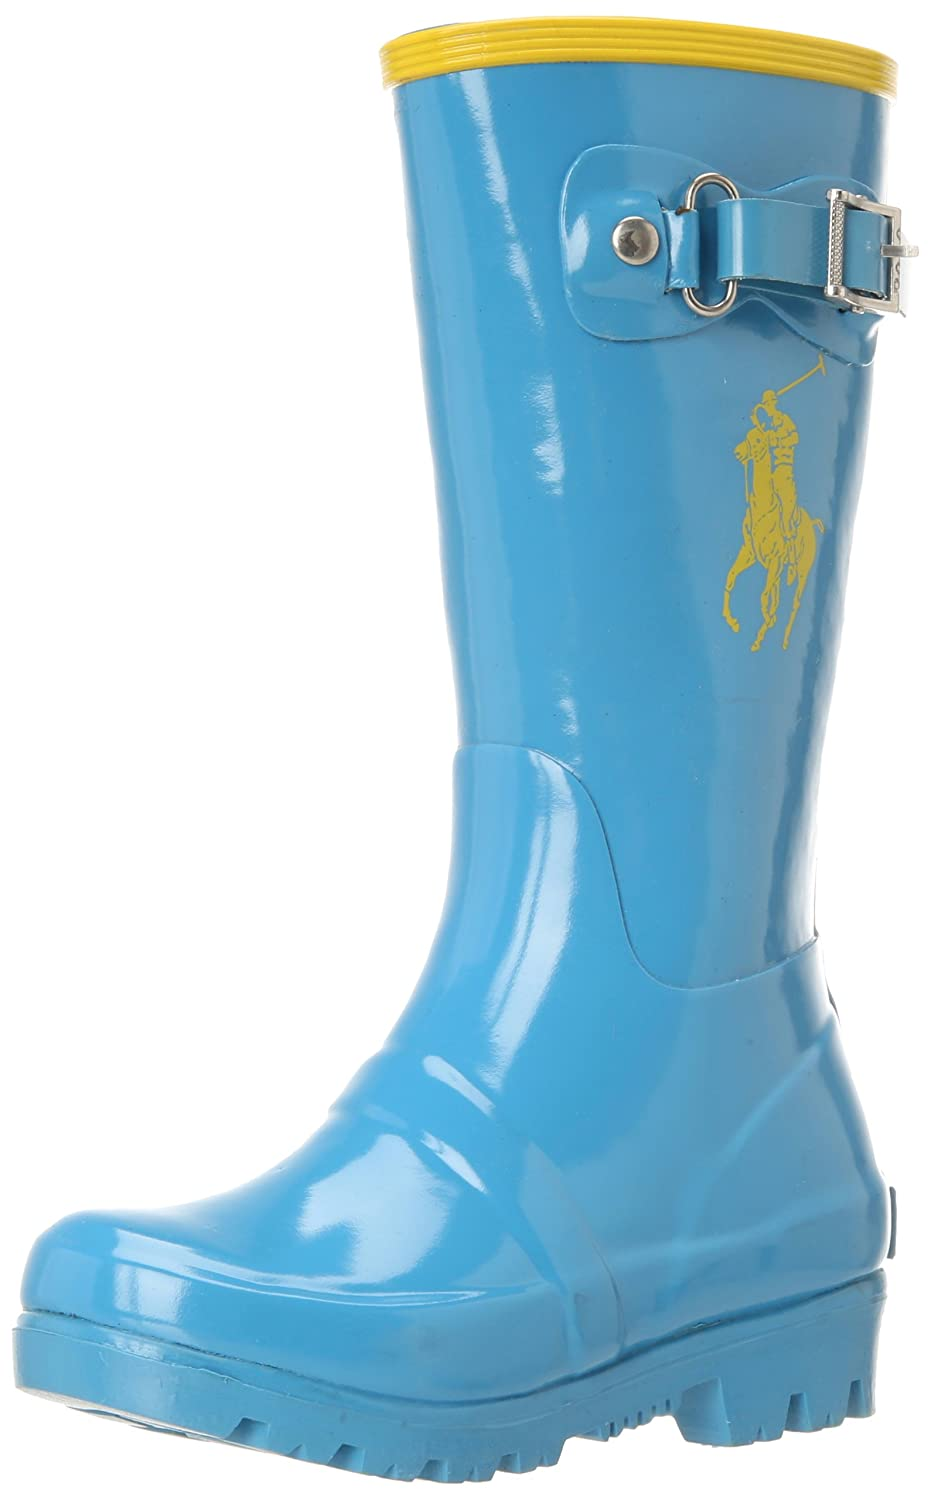 Polo by Ralph Lauren Ralph Rain Boot (Toddler/Little Kid/Big Kid) Polo Ralph Lauren Kids